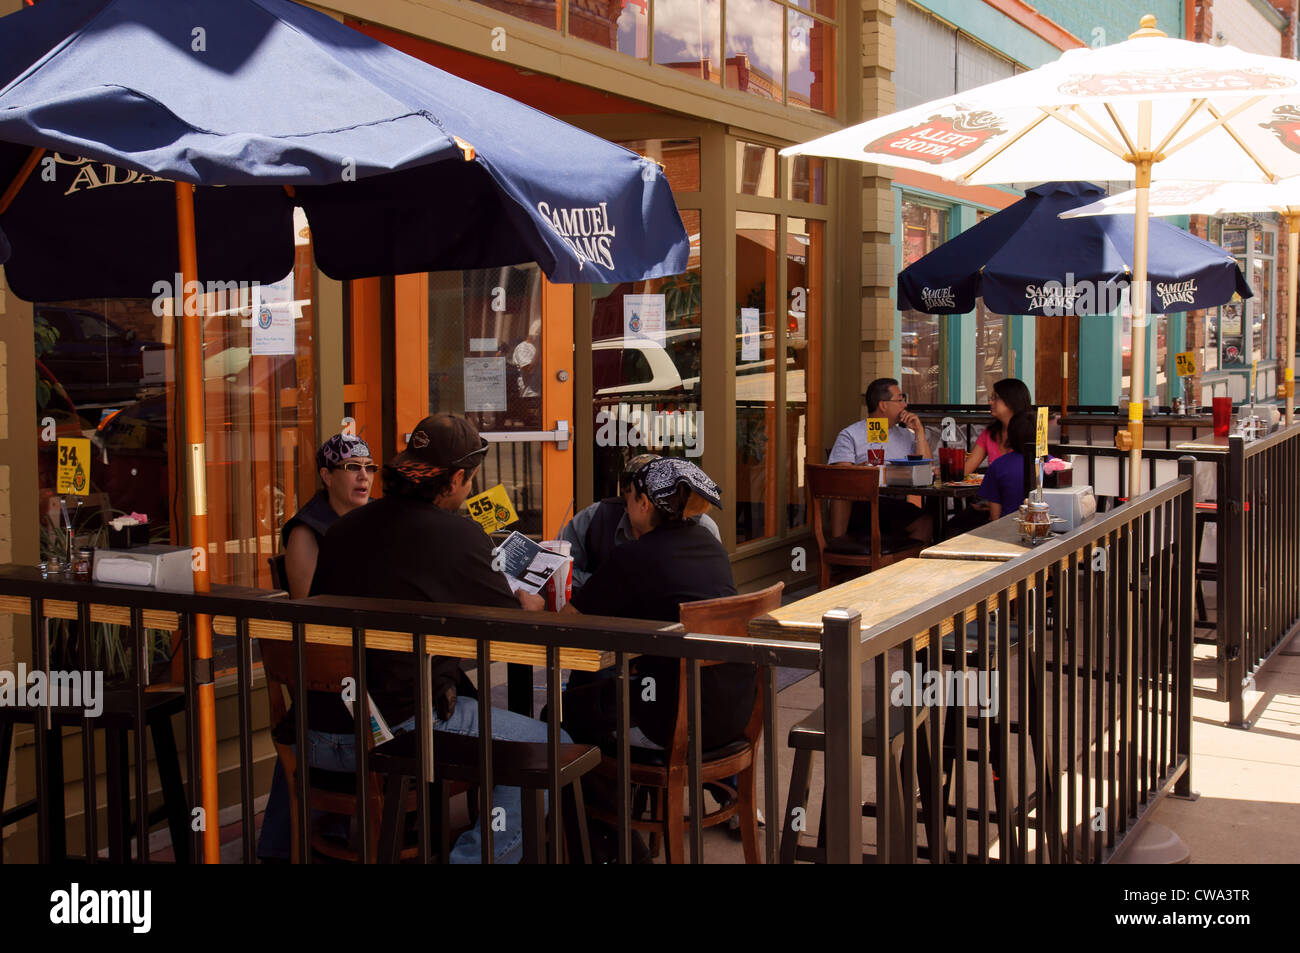 Stock Photo   Outdoor Cafe Patio Restaurant Table Las Vegas Nm Food People  House Person New Mexico Hispanic Latino Youk